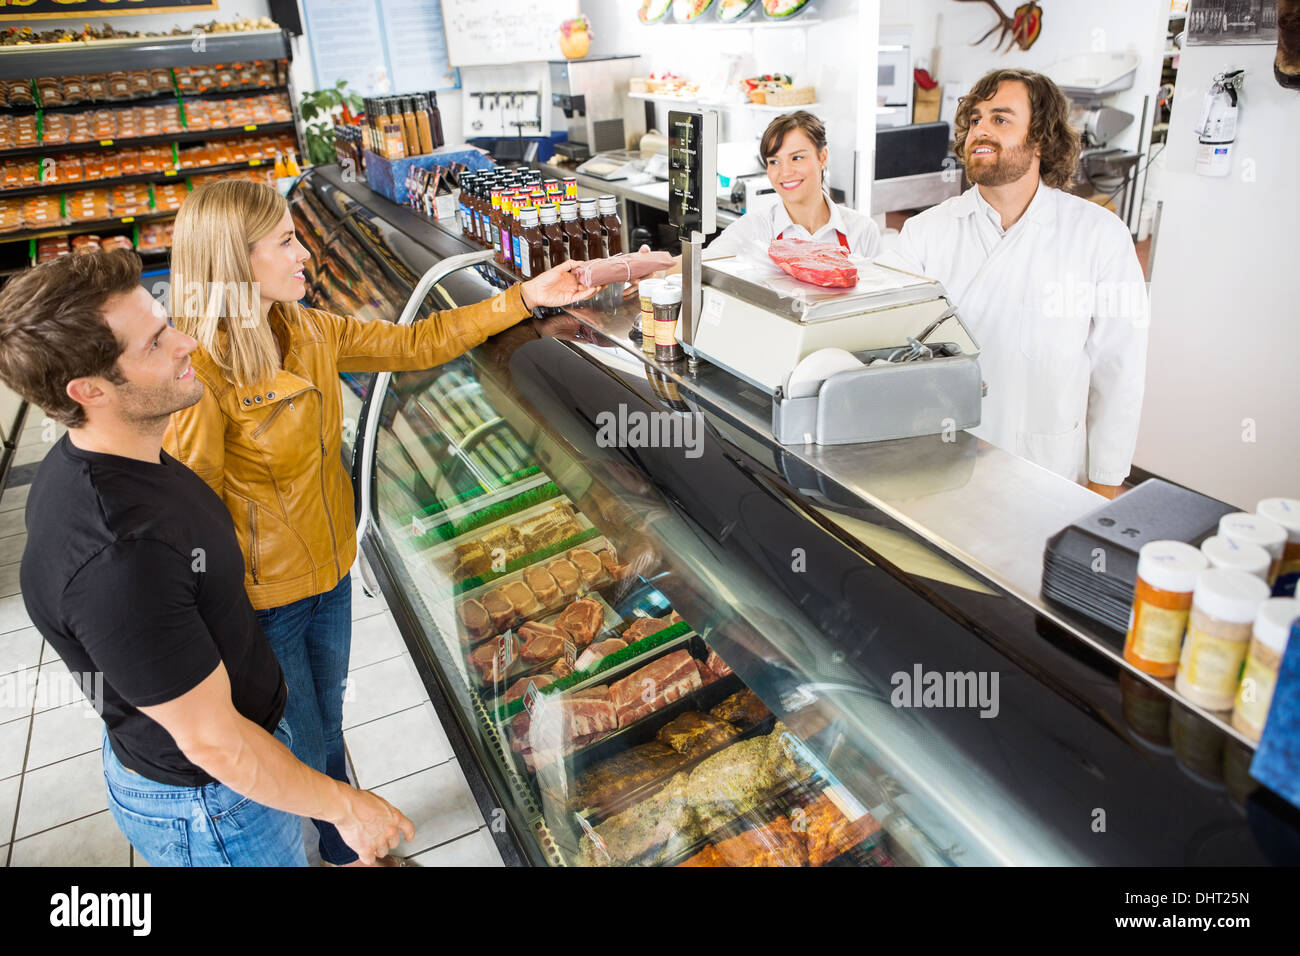 Couple Purchasing Meat From Salesman In Shop - Stock Image